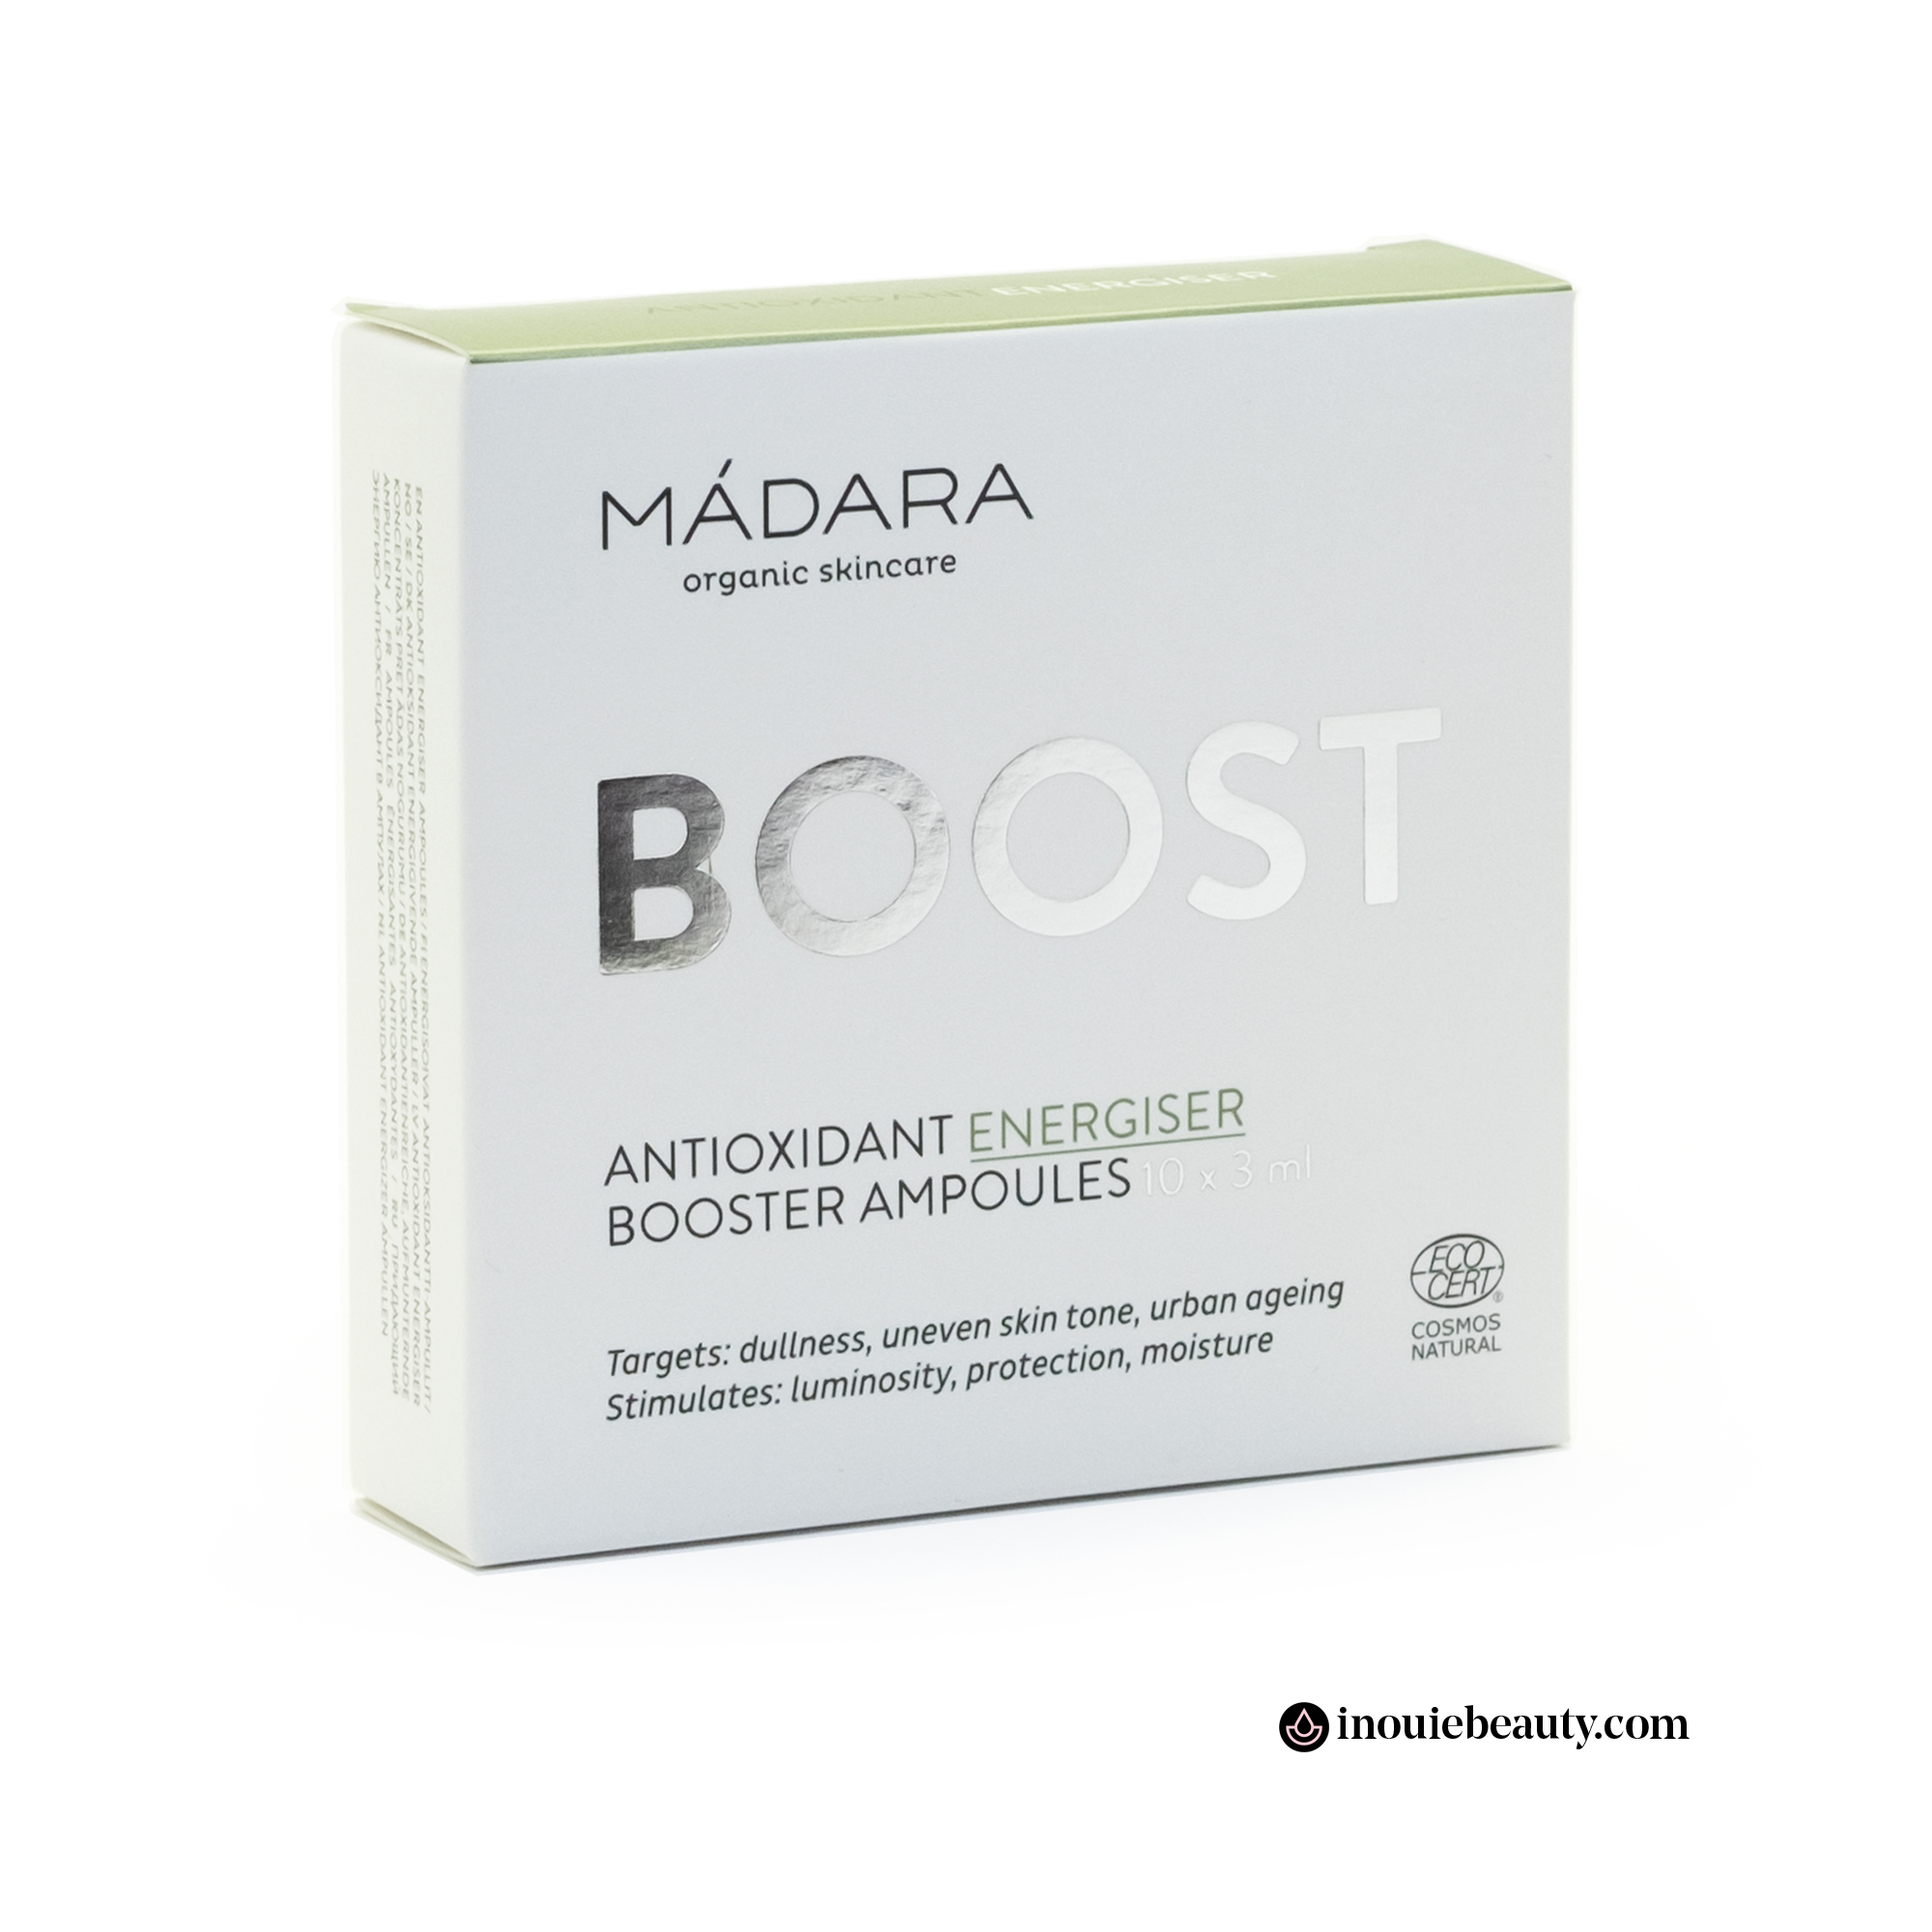 Mádara Antioxidant Energiser Booster Ampoules